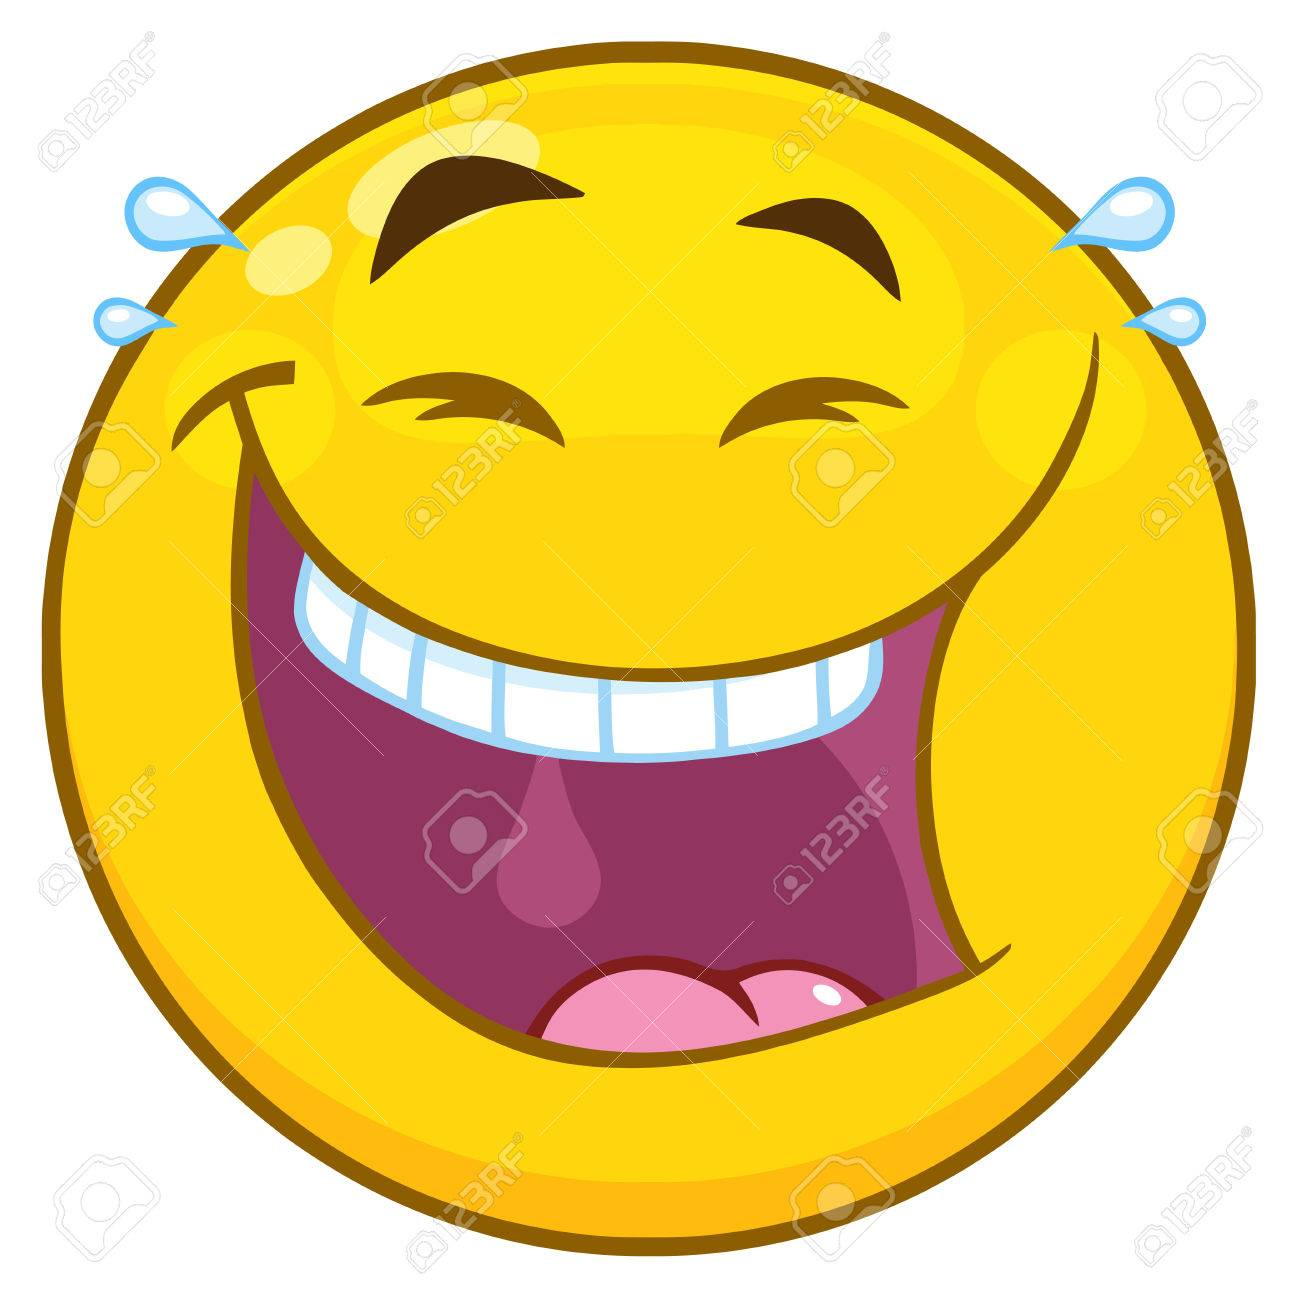 happy yellow cartoon emoji face character with laughing expression rh 123rf com free cartoon laughing faces clip art laughing cartoon face vector